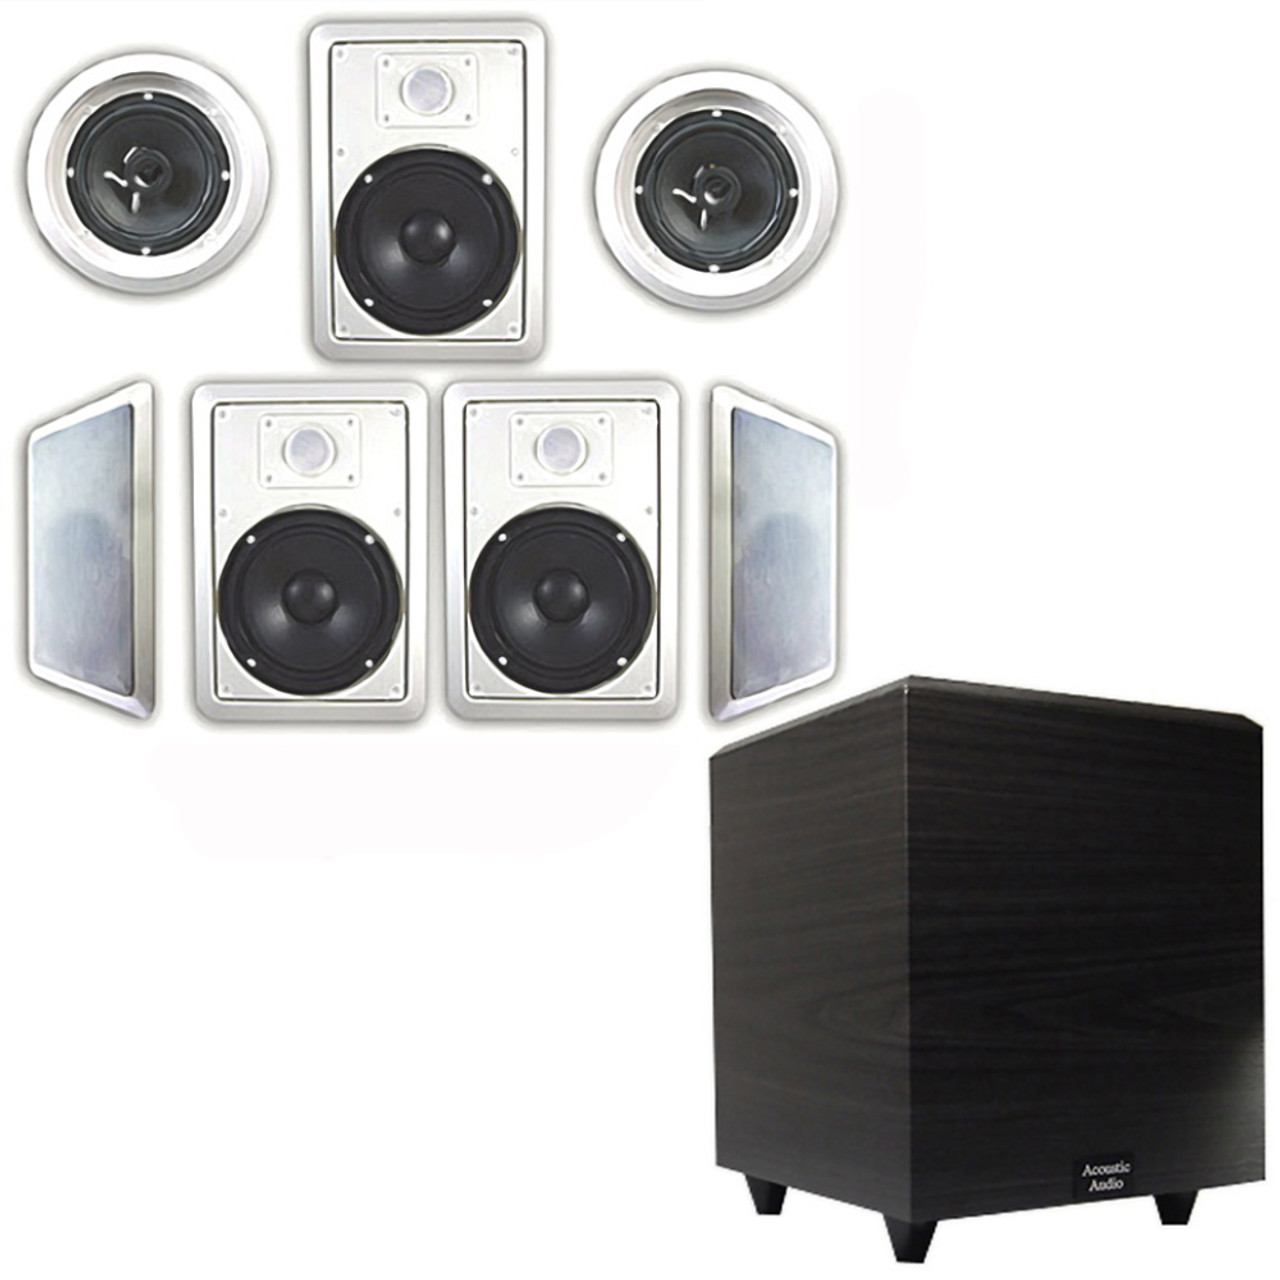 Acoustic Audio Ht 67 In Wall Ceiling 7 1 Home Theater 6 5 Speakers And 8 Powered Sub Ht 67 Ps8